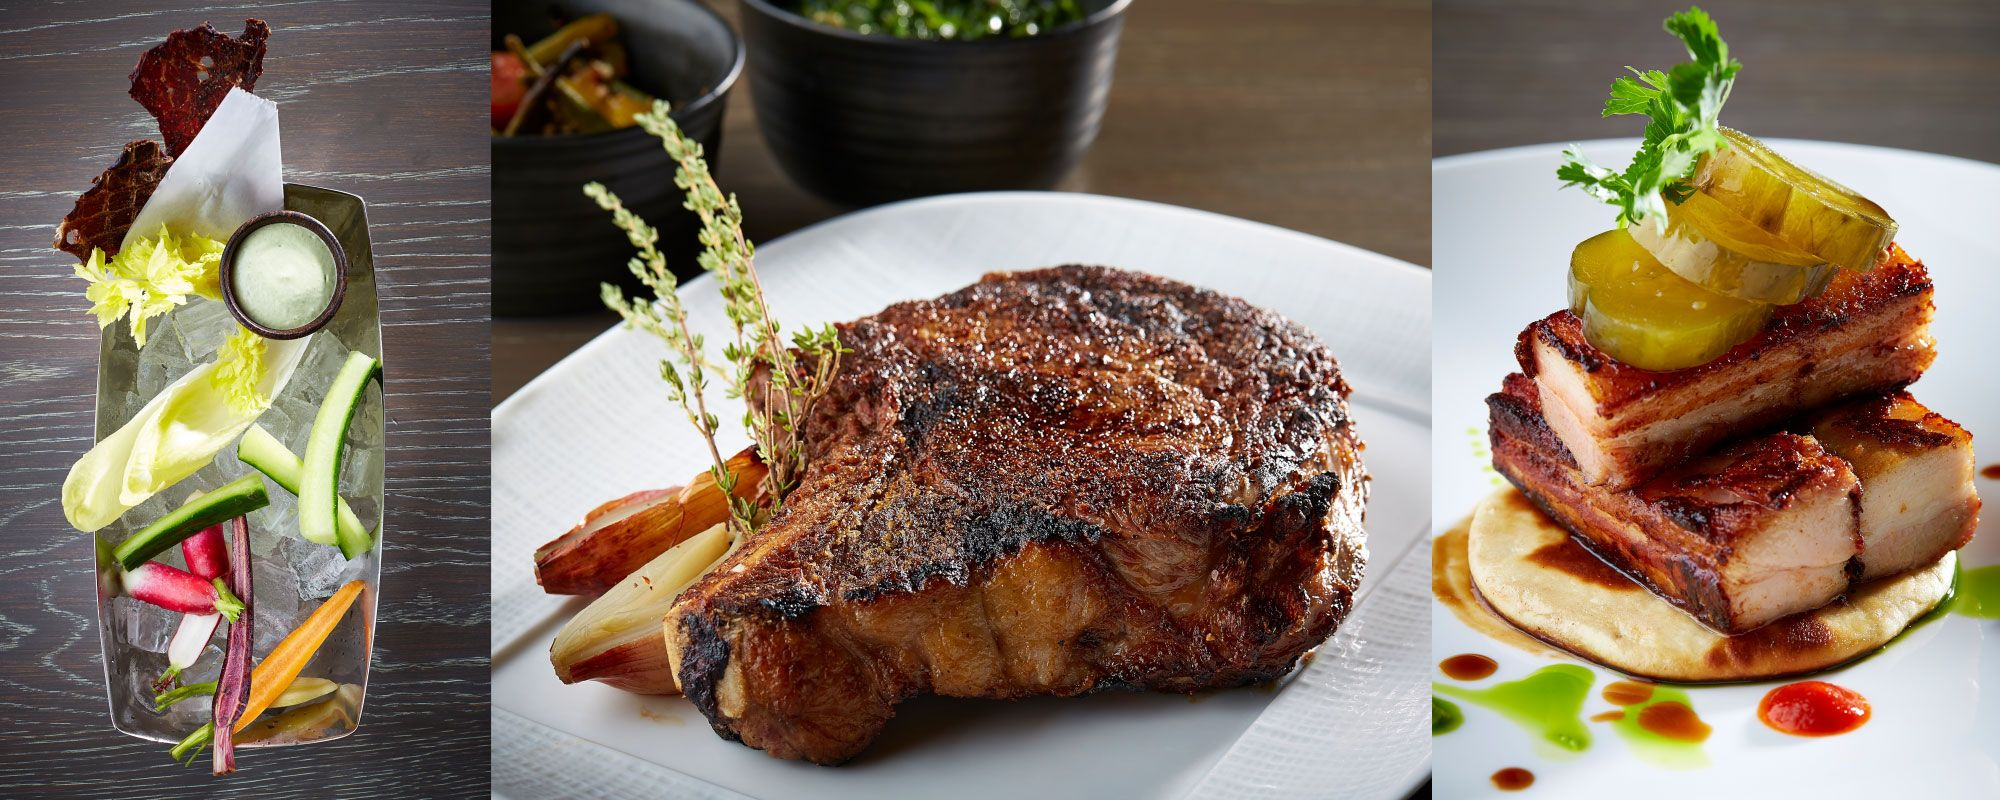 Enjoy The Best Steakhouse In Dallas Knife A New Modern Restaurant By Chef John Tesar At Highland